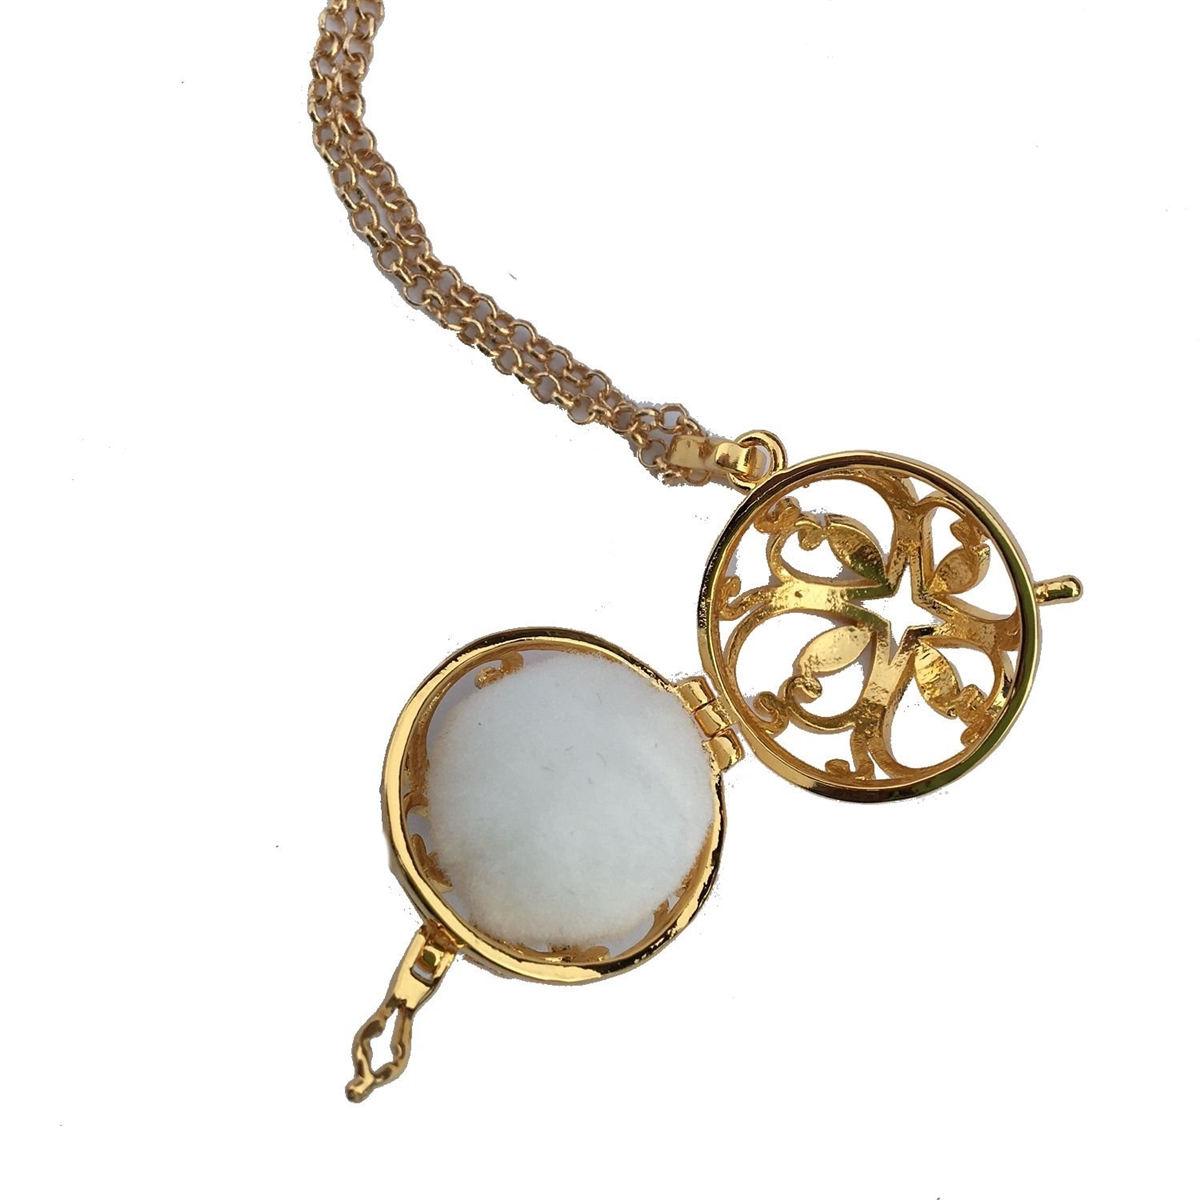 Aromatherapy Jewelry 26 Inch GOLD LEAF ESSENTIAL OIL NECKLACE